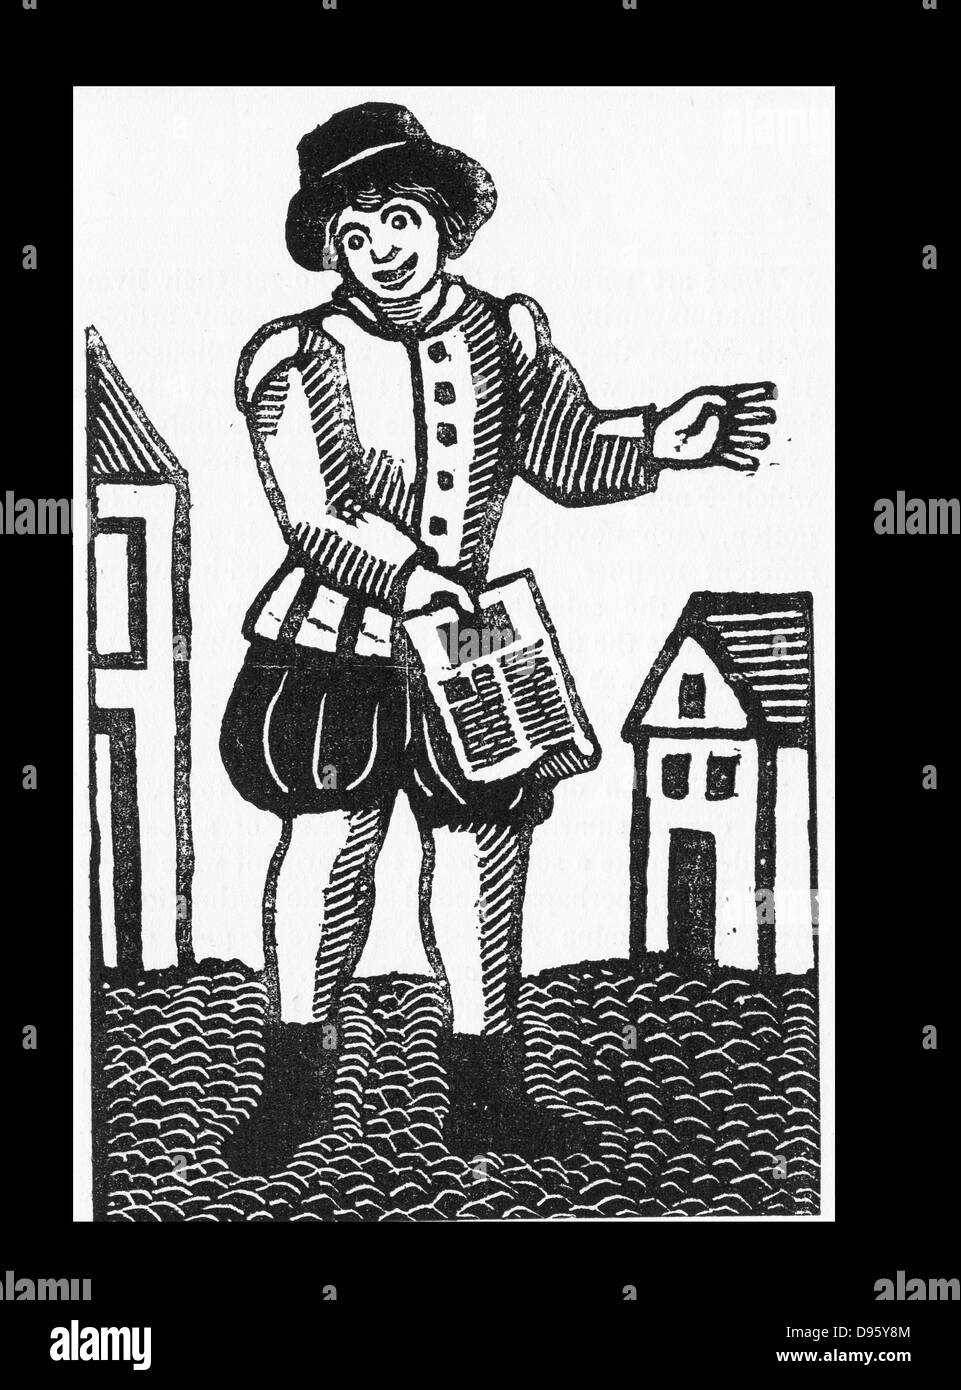 Pedlar selling printed ballads in the street. 17th century London. - Stock Image